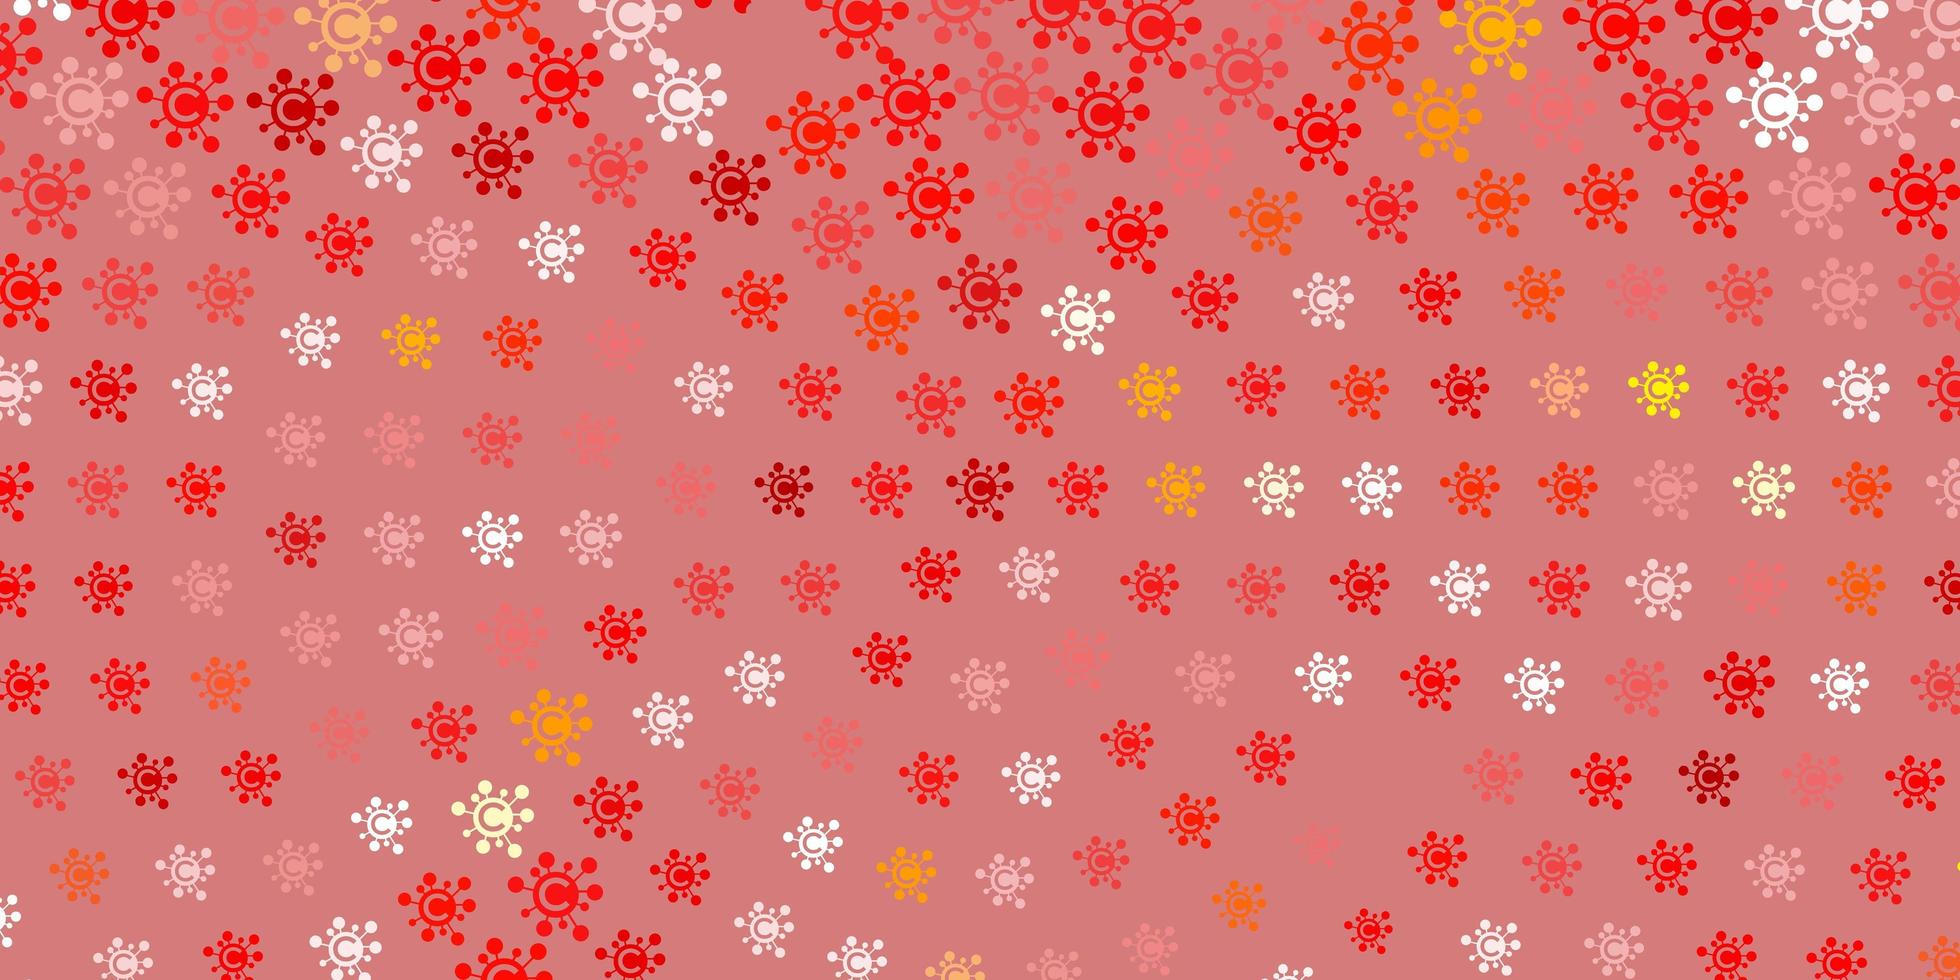 Light Red, Yellow vector background with covid-19 symbols